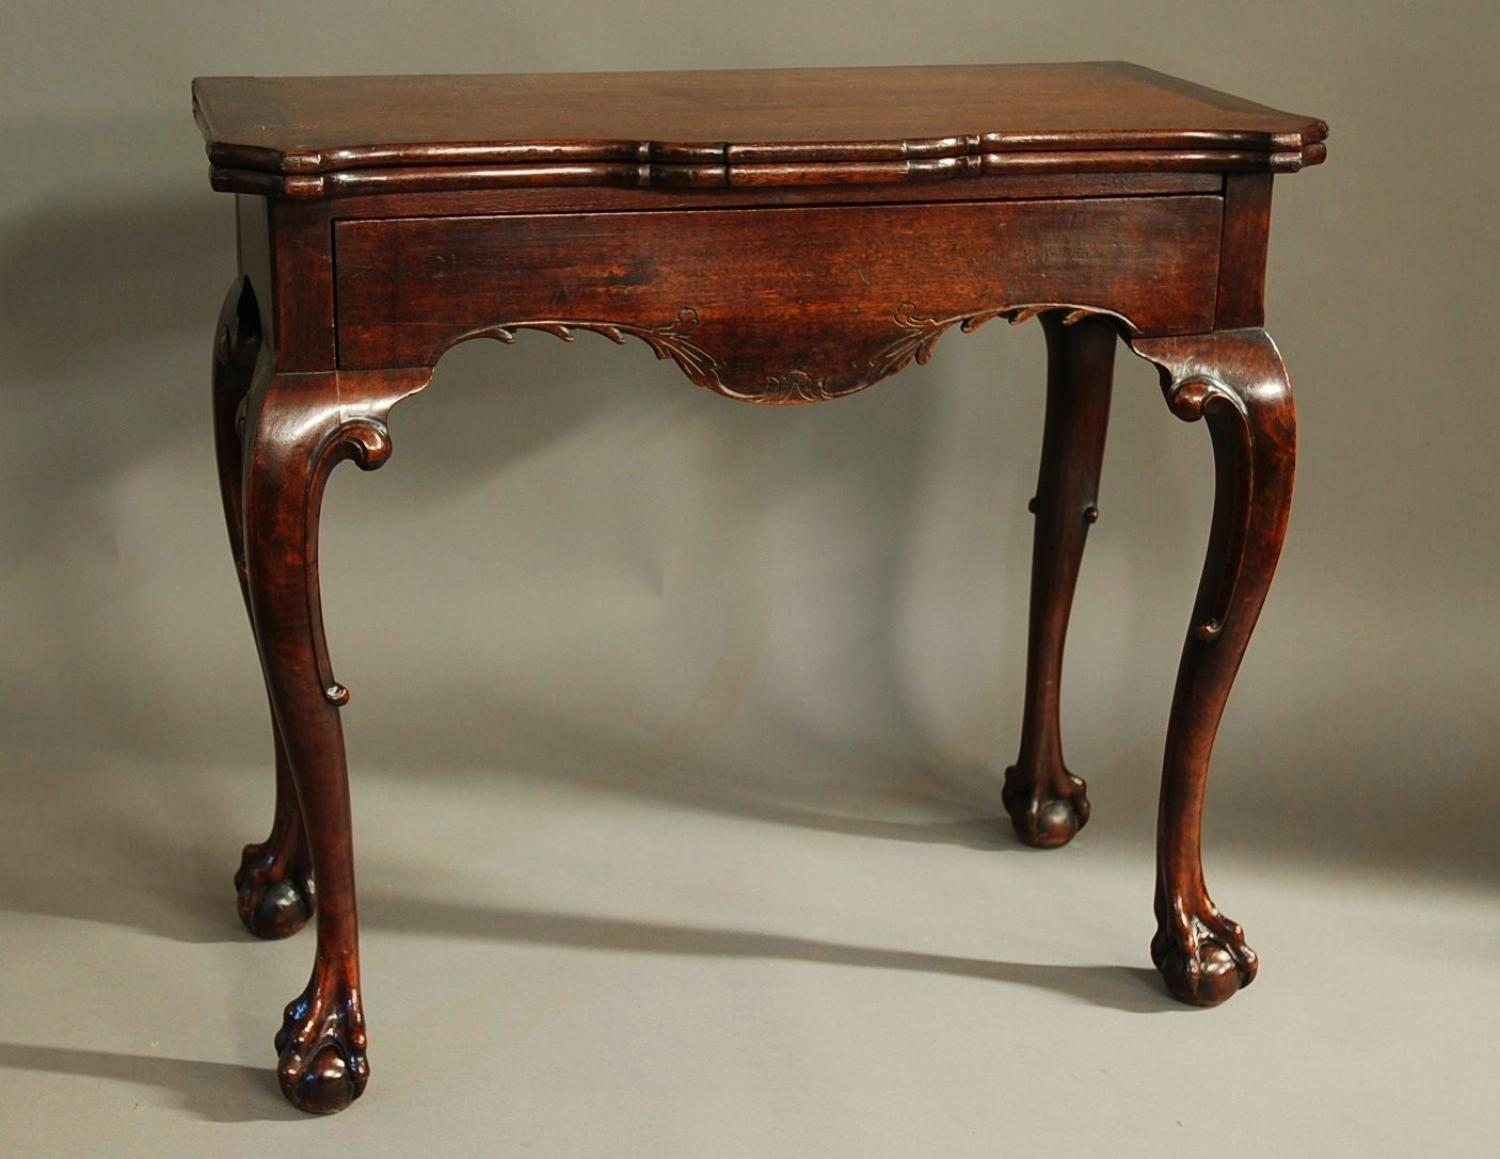 18thc Irish American black walnut tea table